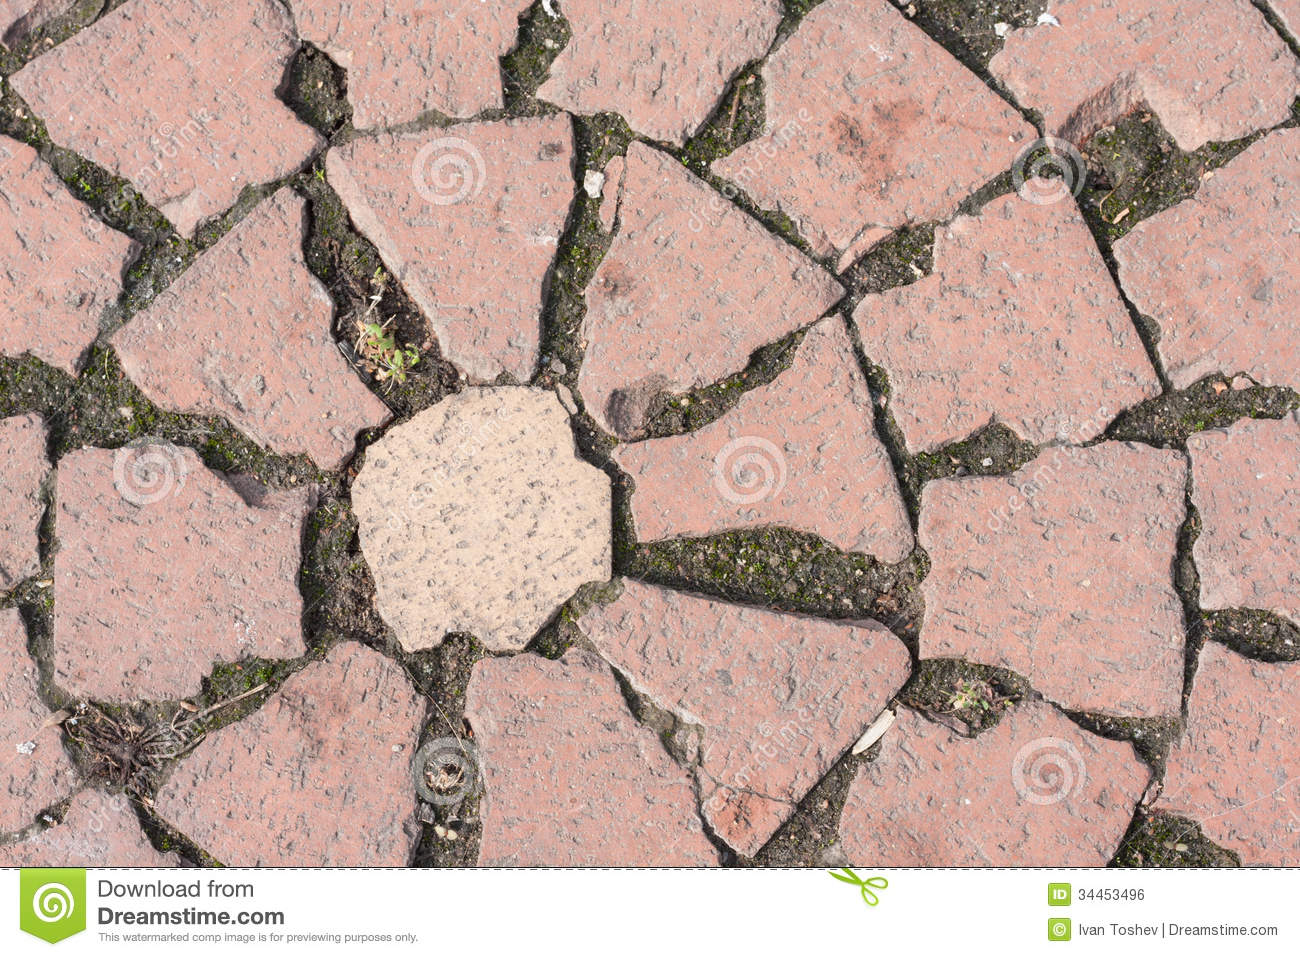 Tiles stock photo. Image of construction, material, block - 34453496